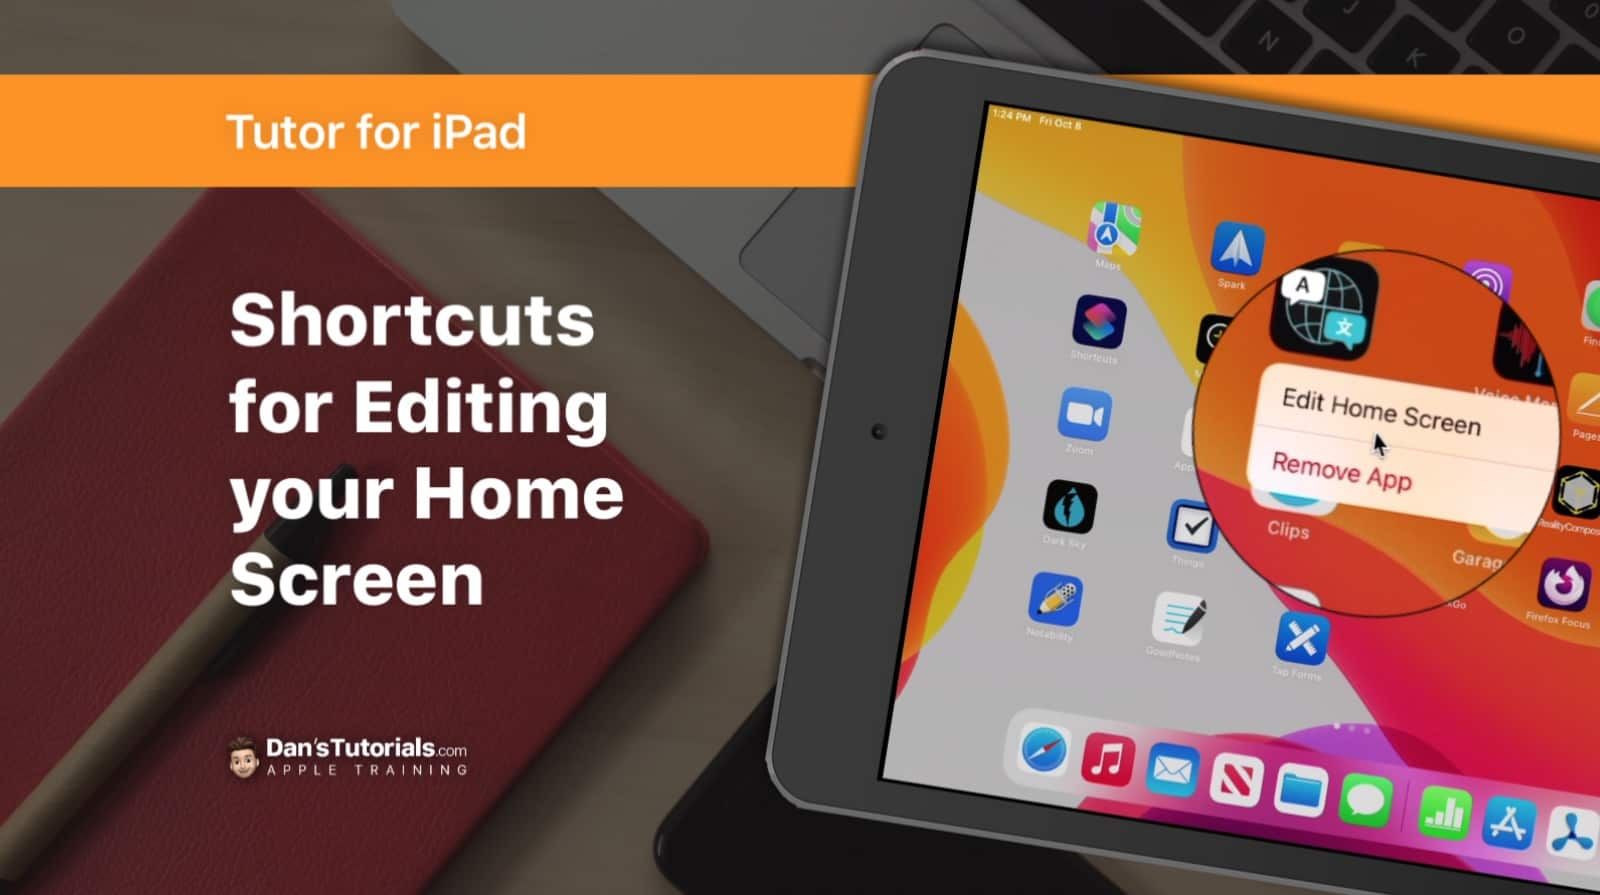 Shortcuts for Editing your Home Screen on the iPad